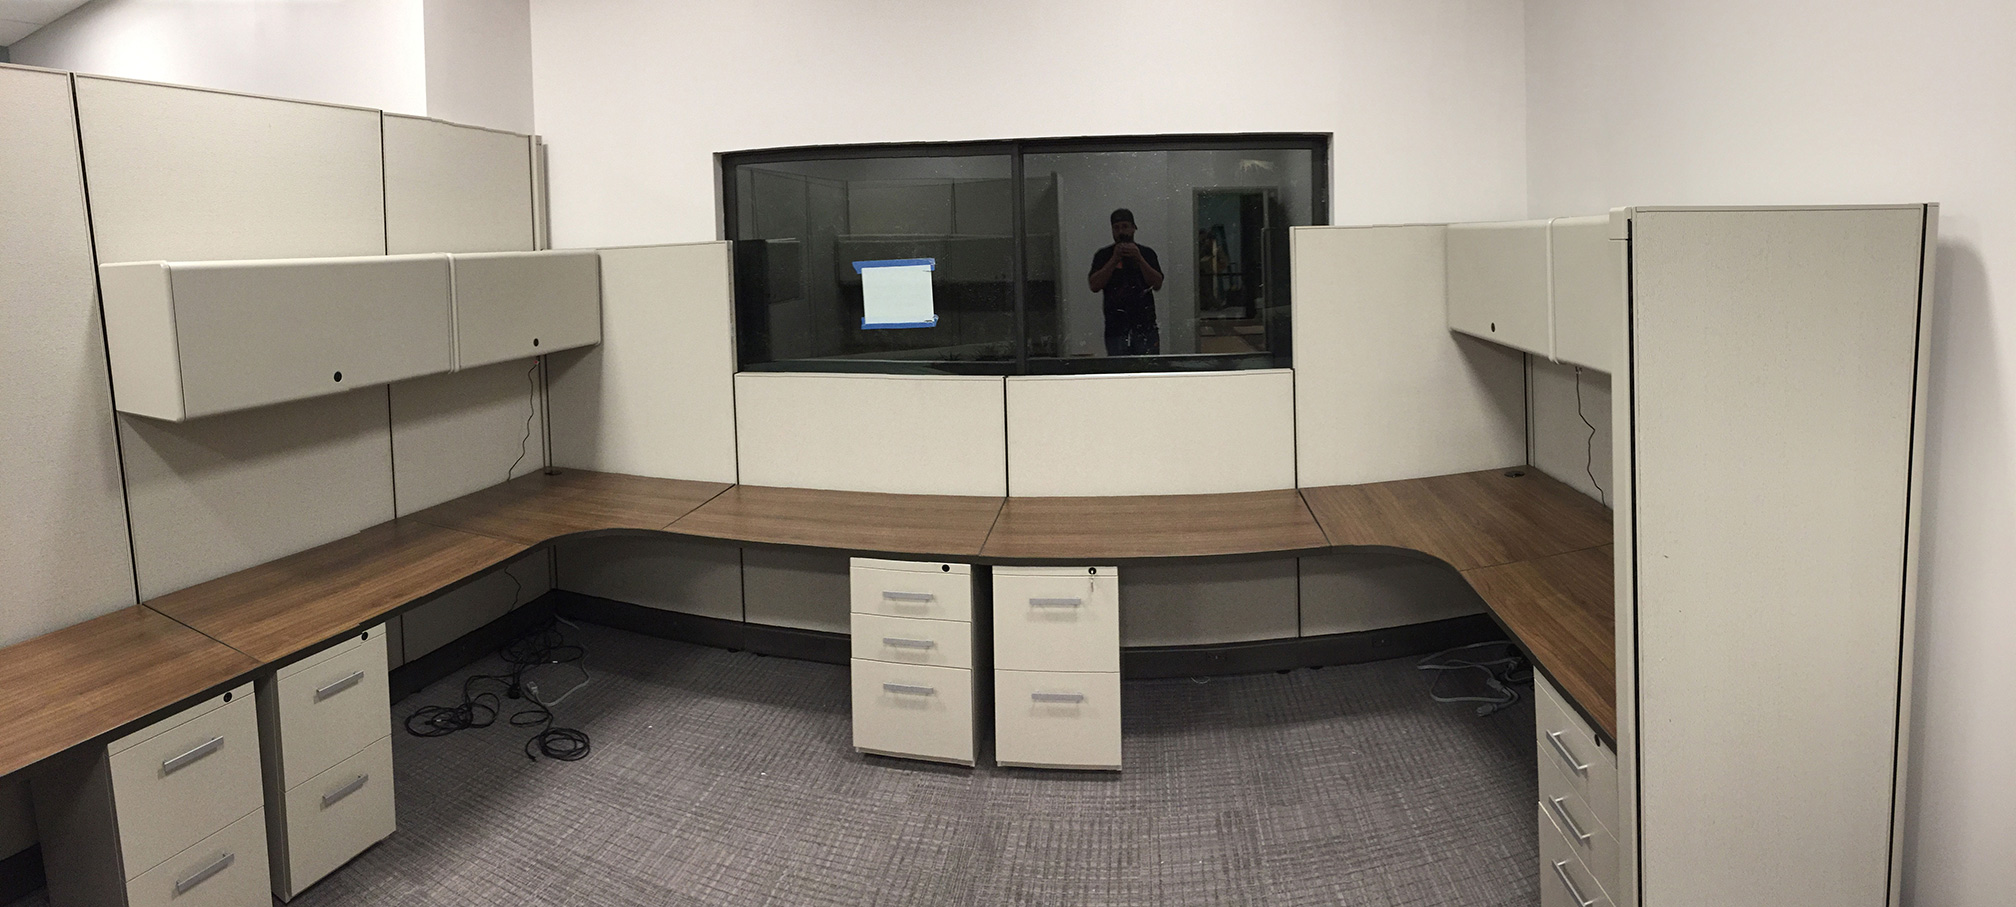 office-cubicles-for-sale-in-delray-beach-florida-3-2.jpg